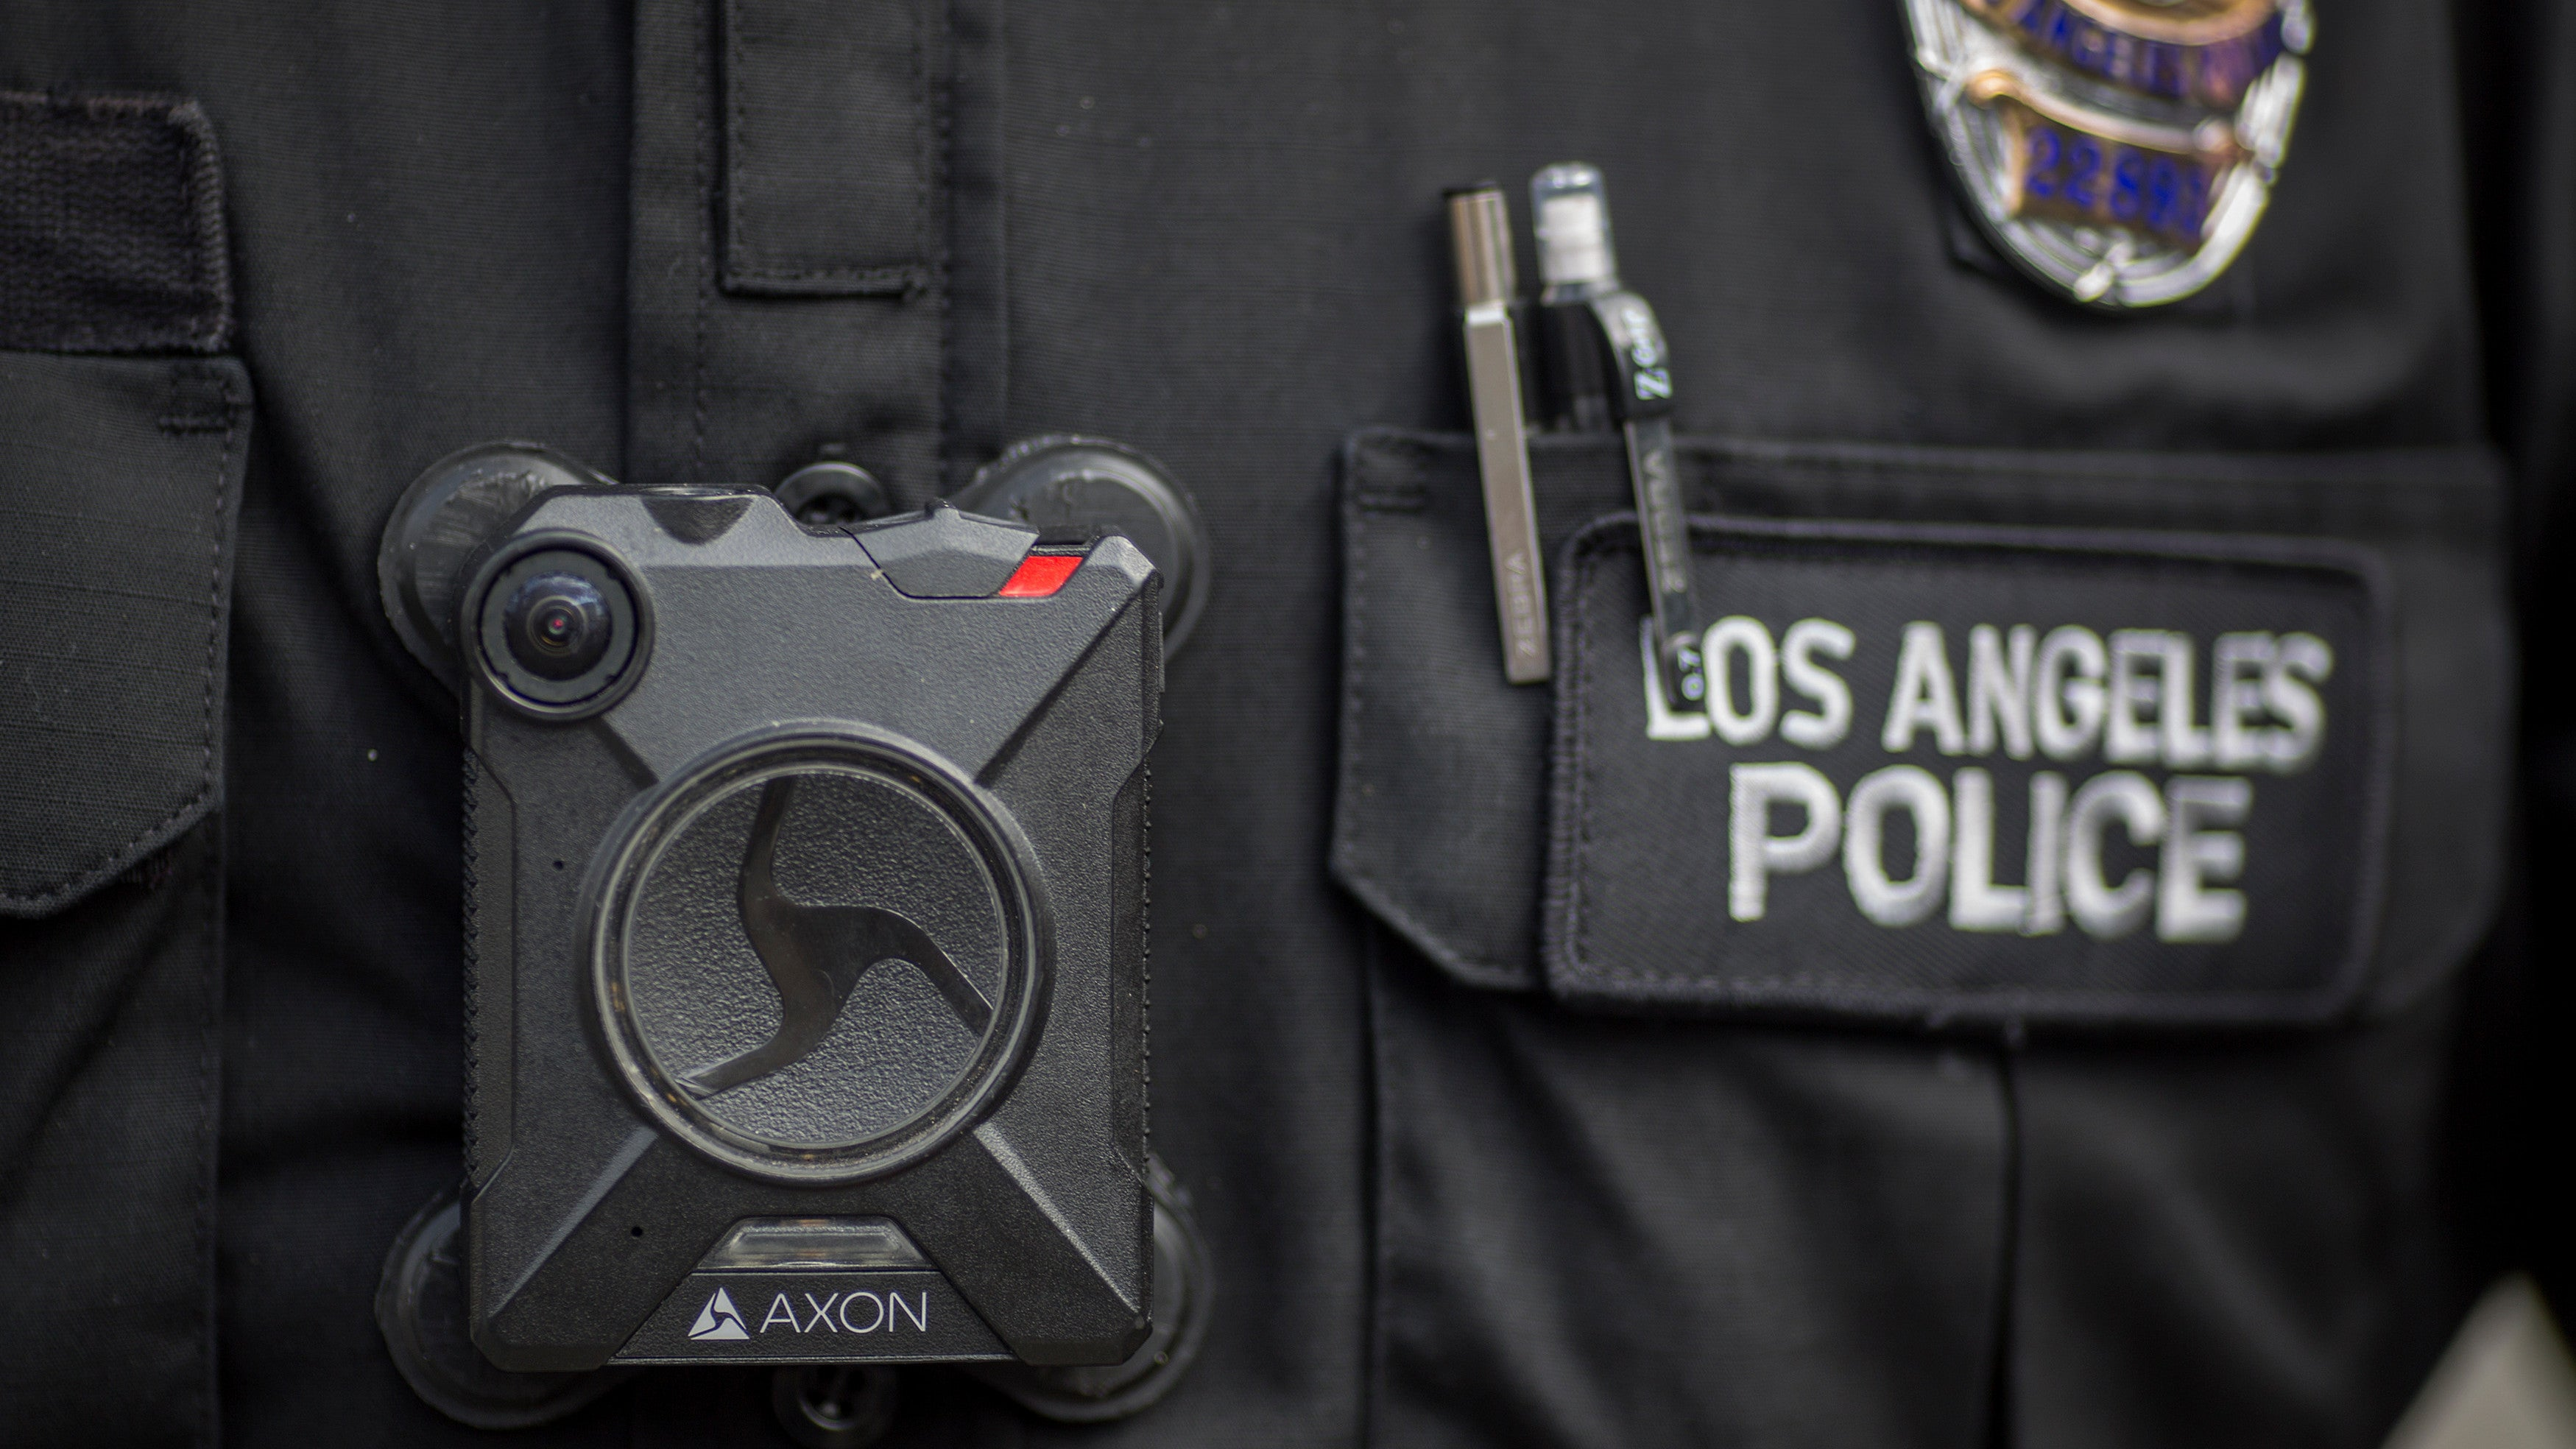 California Law Officially Bans Facial Recognition In Police Body Cams